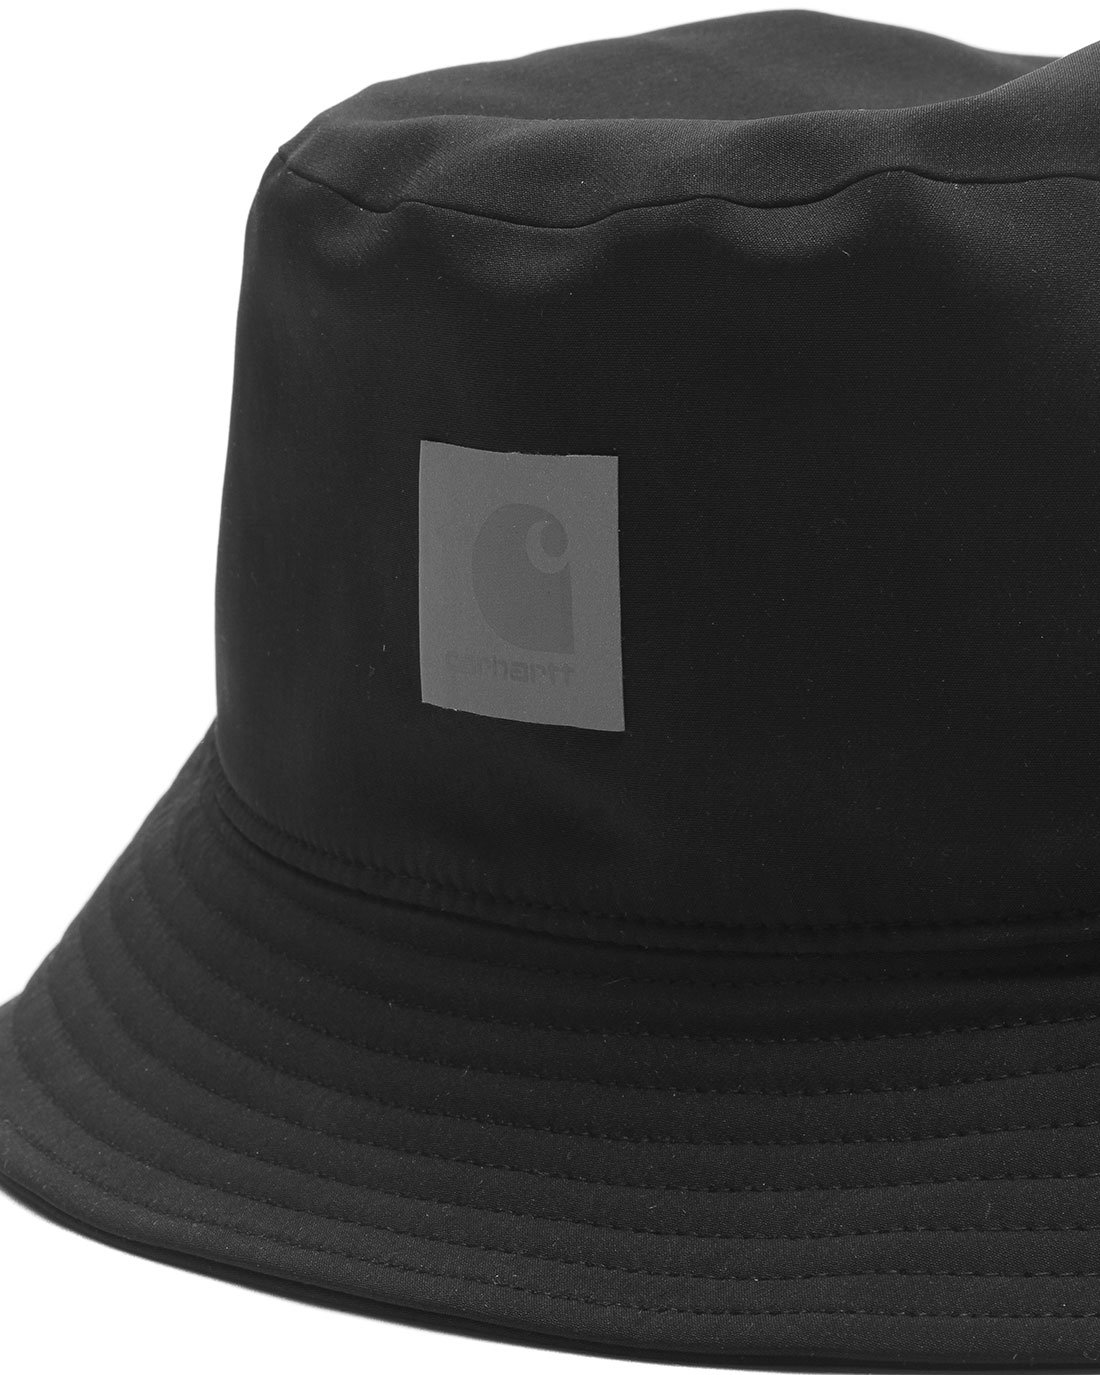 Carhartt Men s Caps Hats Reflective Bucket Hat 14f251b0c833